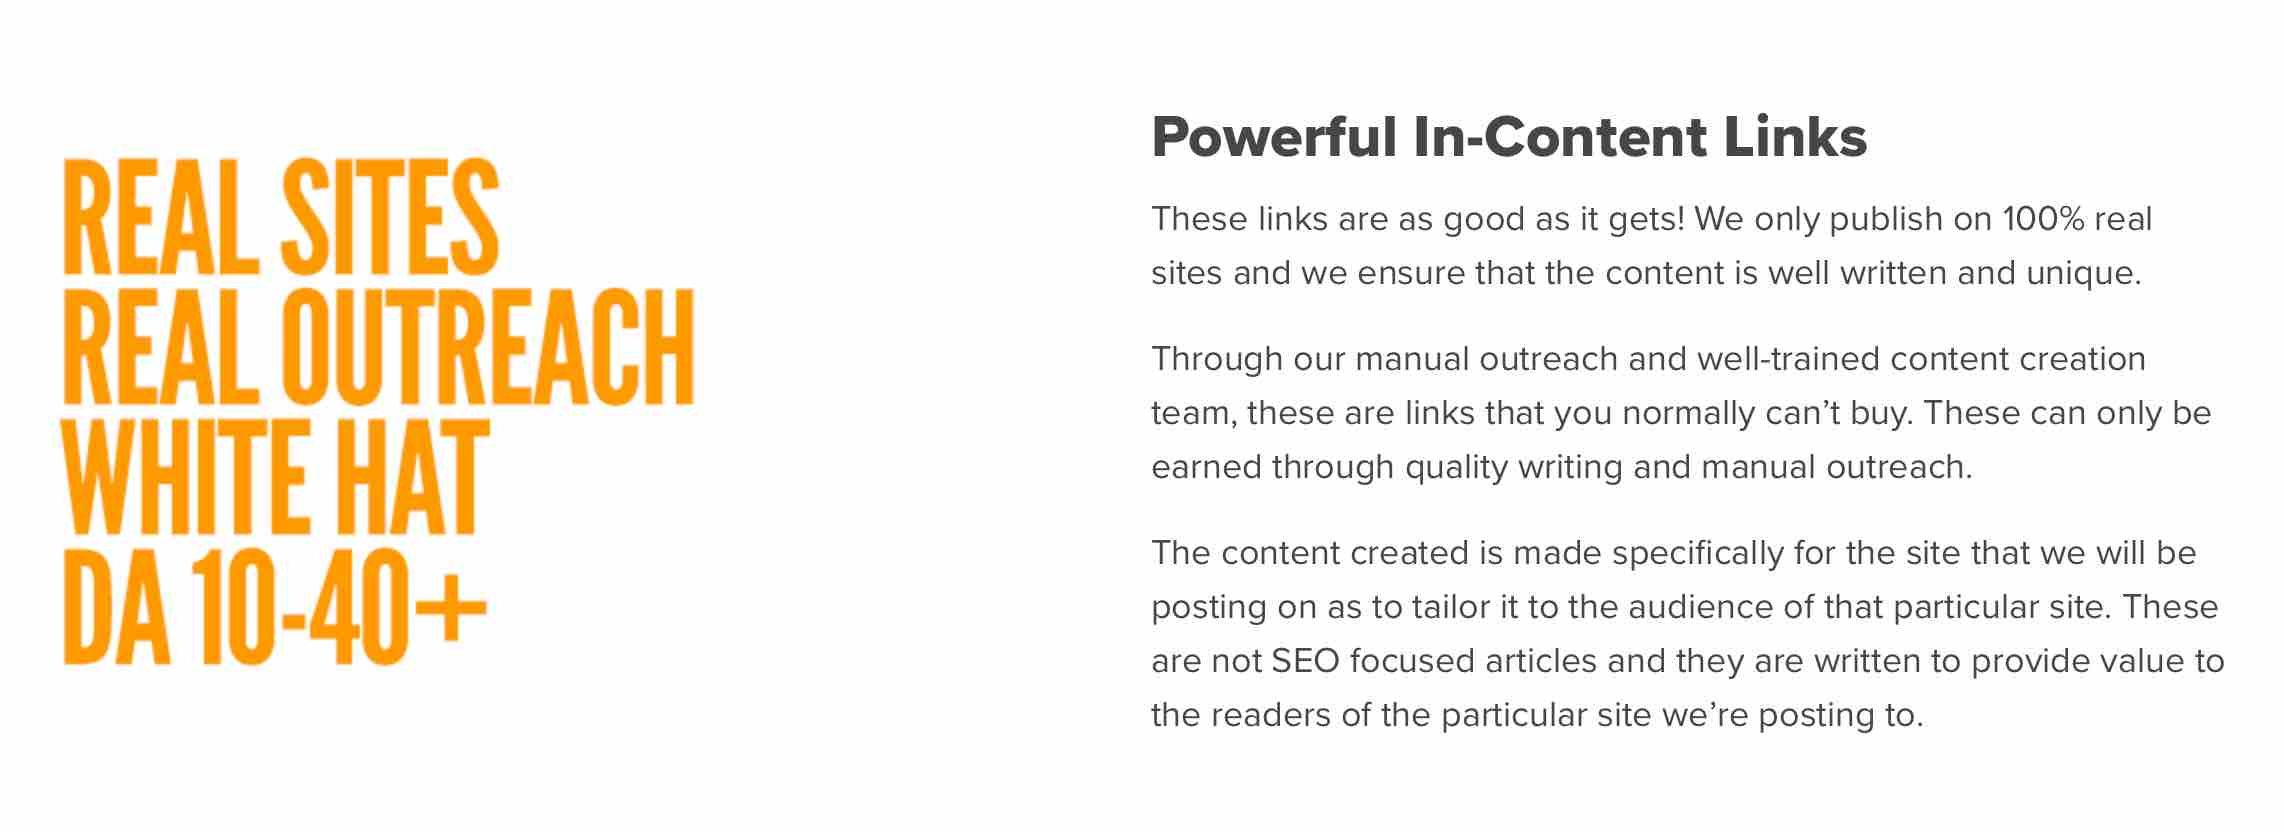 Powerful In-Content Links